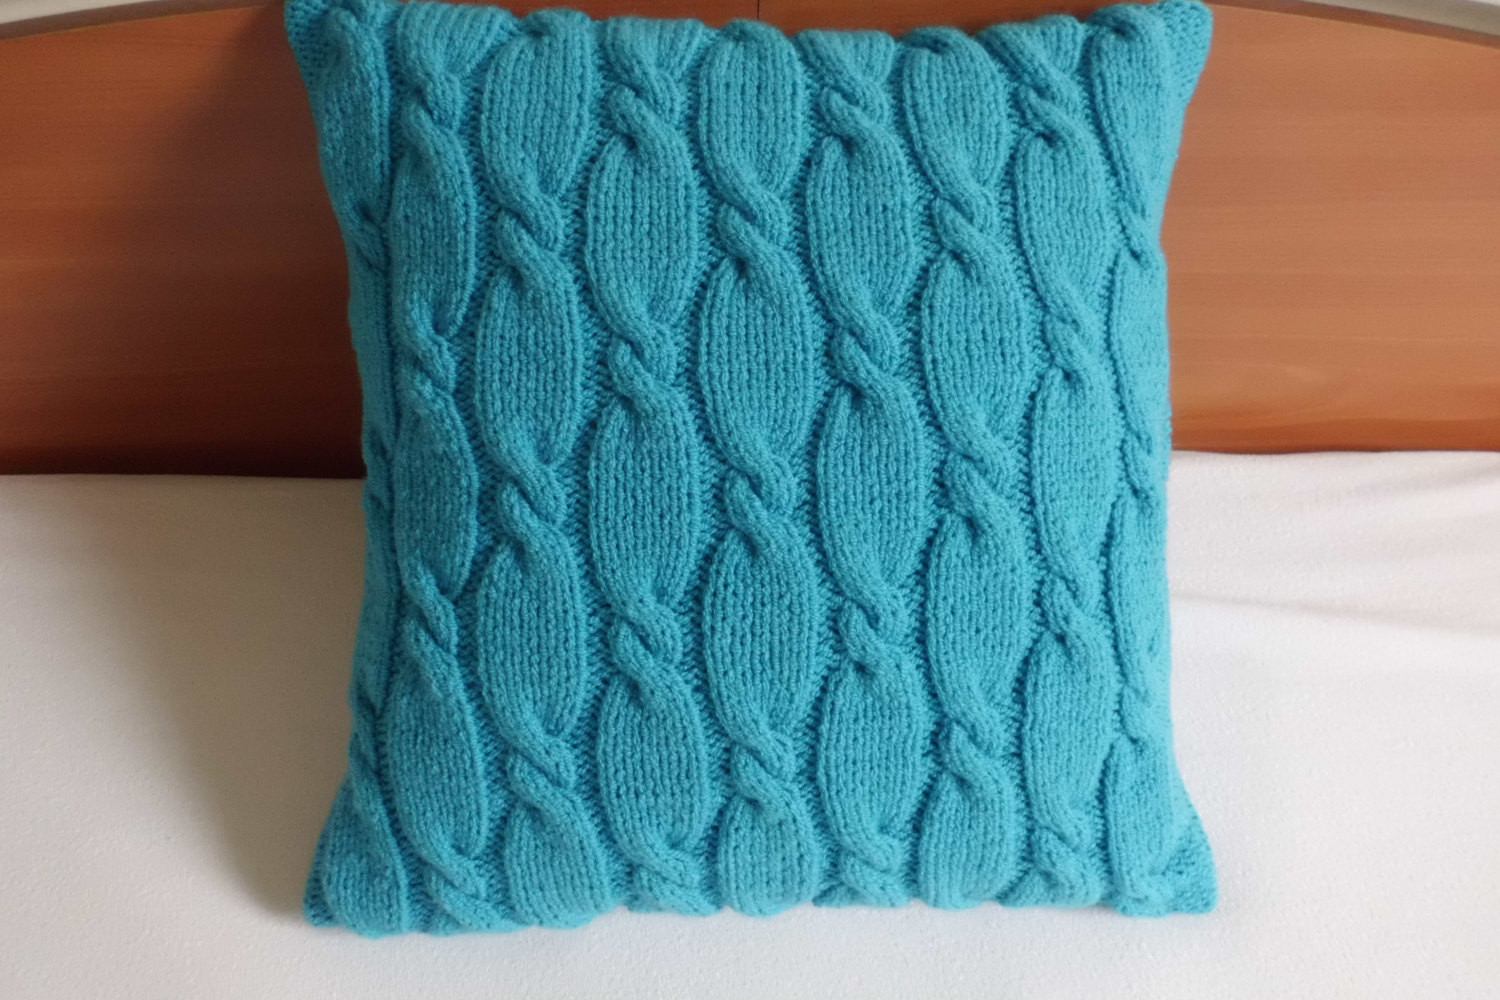 Cable Knit Throw Lovely Cable Knit Pillow Case Knit Throw Pillow Teal Decorative Of Charming 49 Models Cable Knit Throw